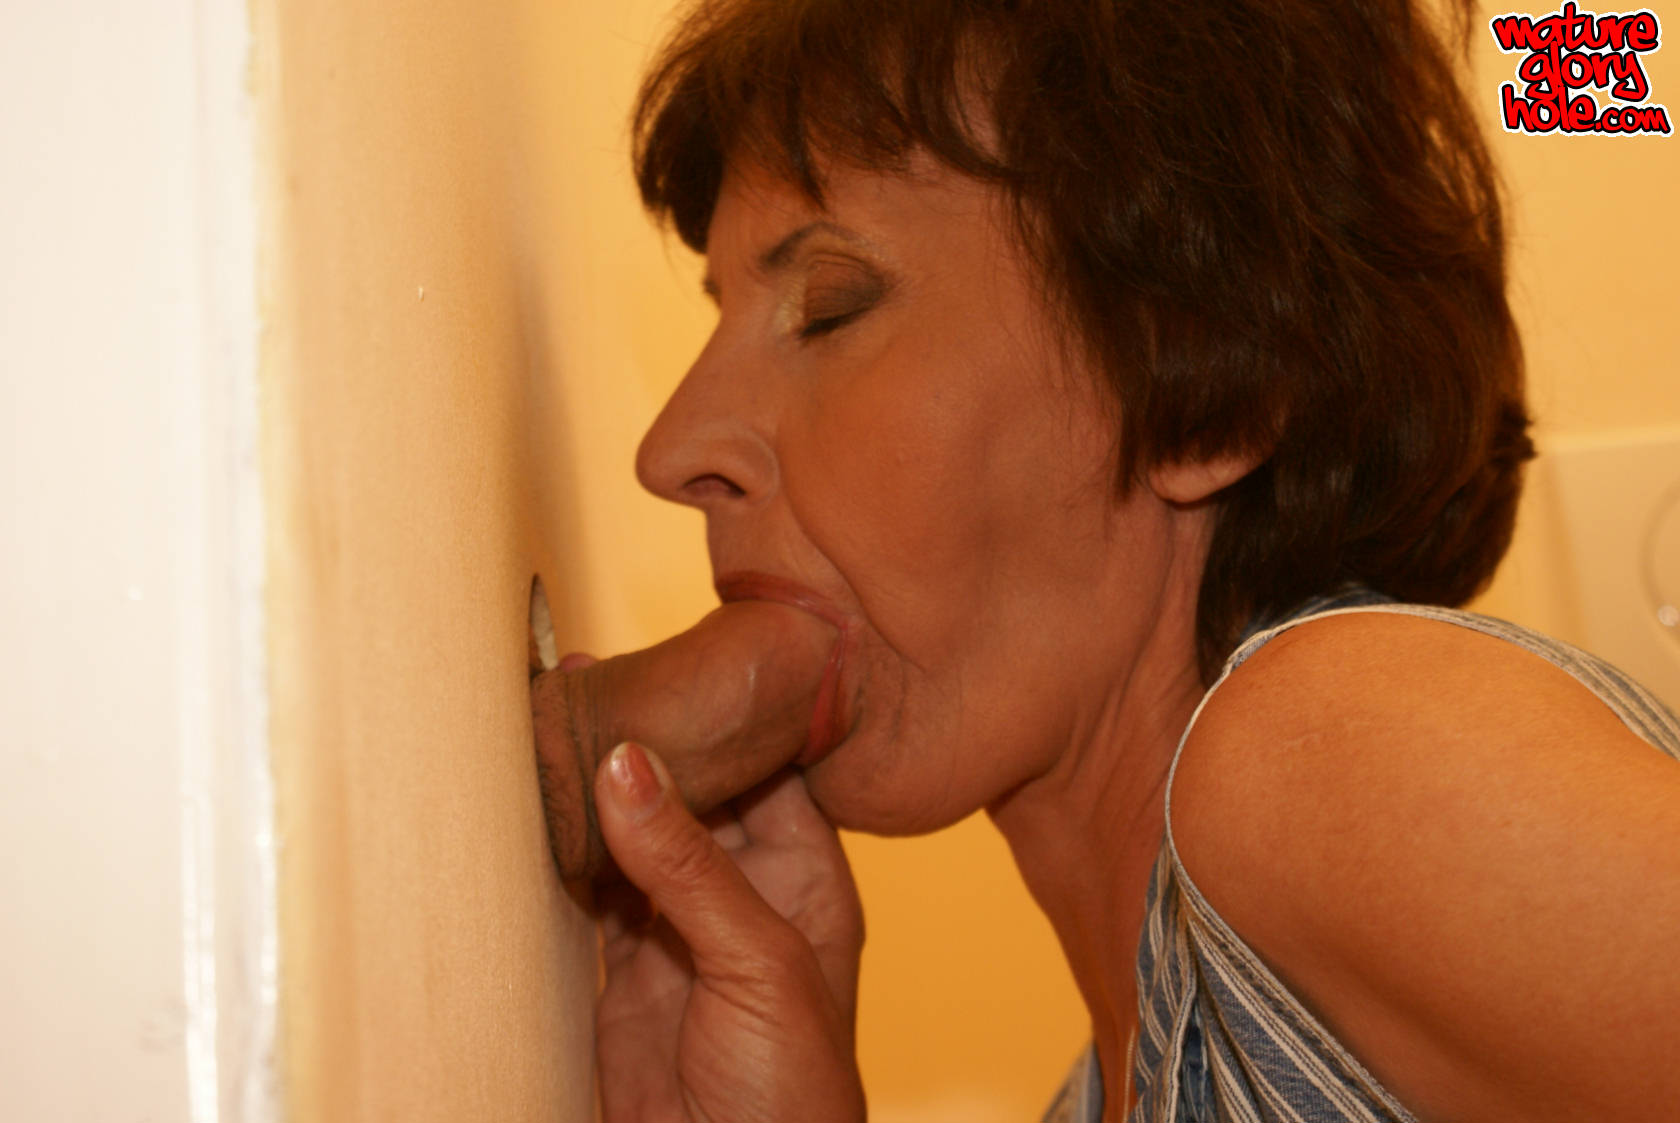 Mature mega-bitch inhaling and plowing on a toilet